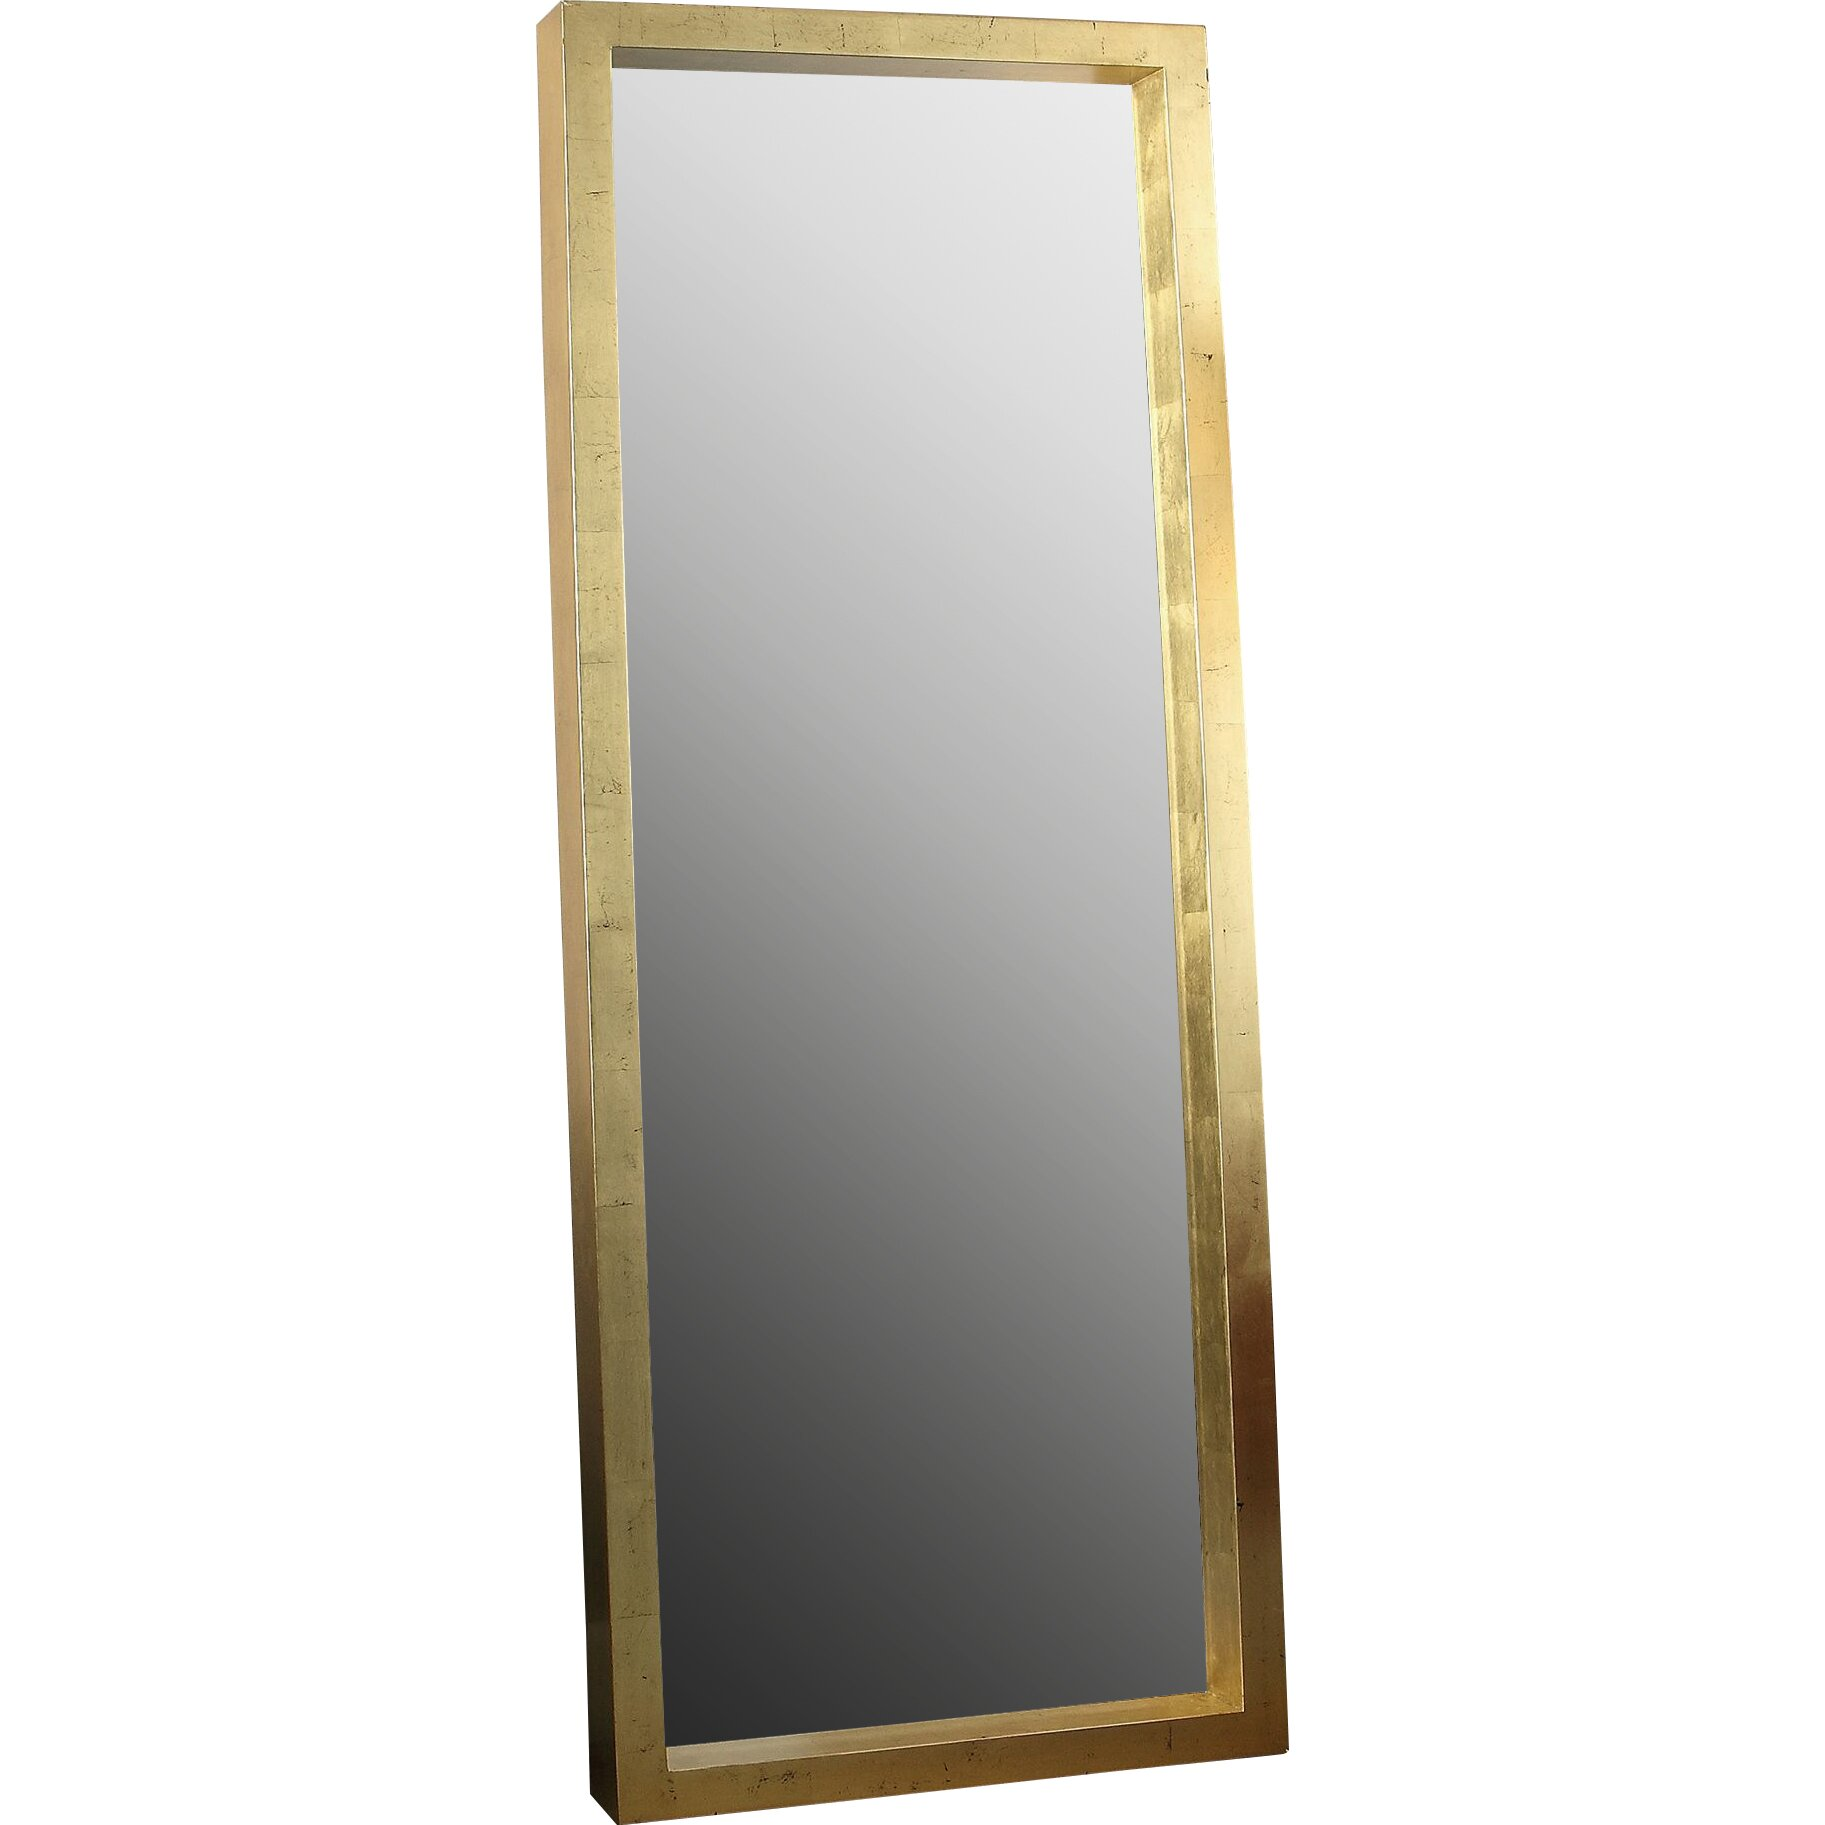 Bathroom Mirrors Edmonton With Creative Innovation In